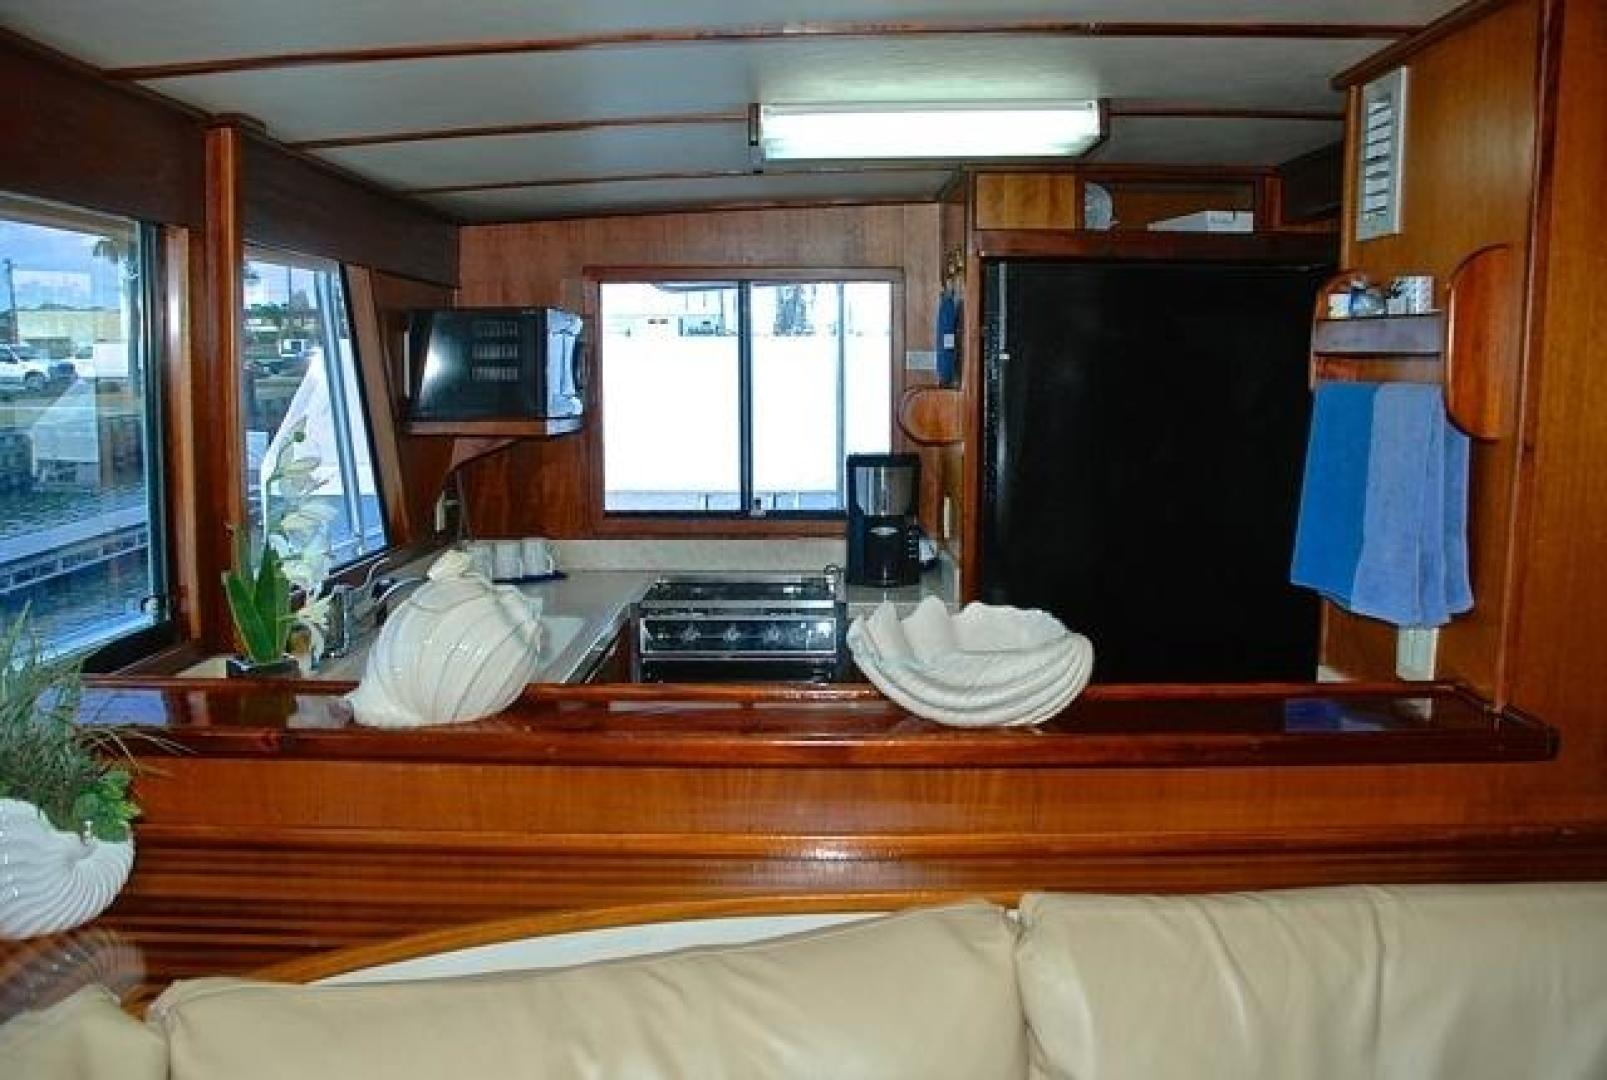 Infinity-Cockpit Motor Yacht 2001-Dont Matter Houston-Texas-United States-Galley View 2-1005536 | Thumbnail